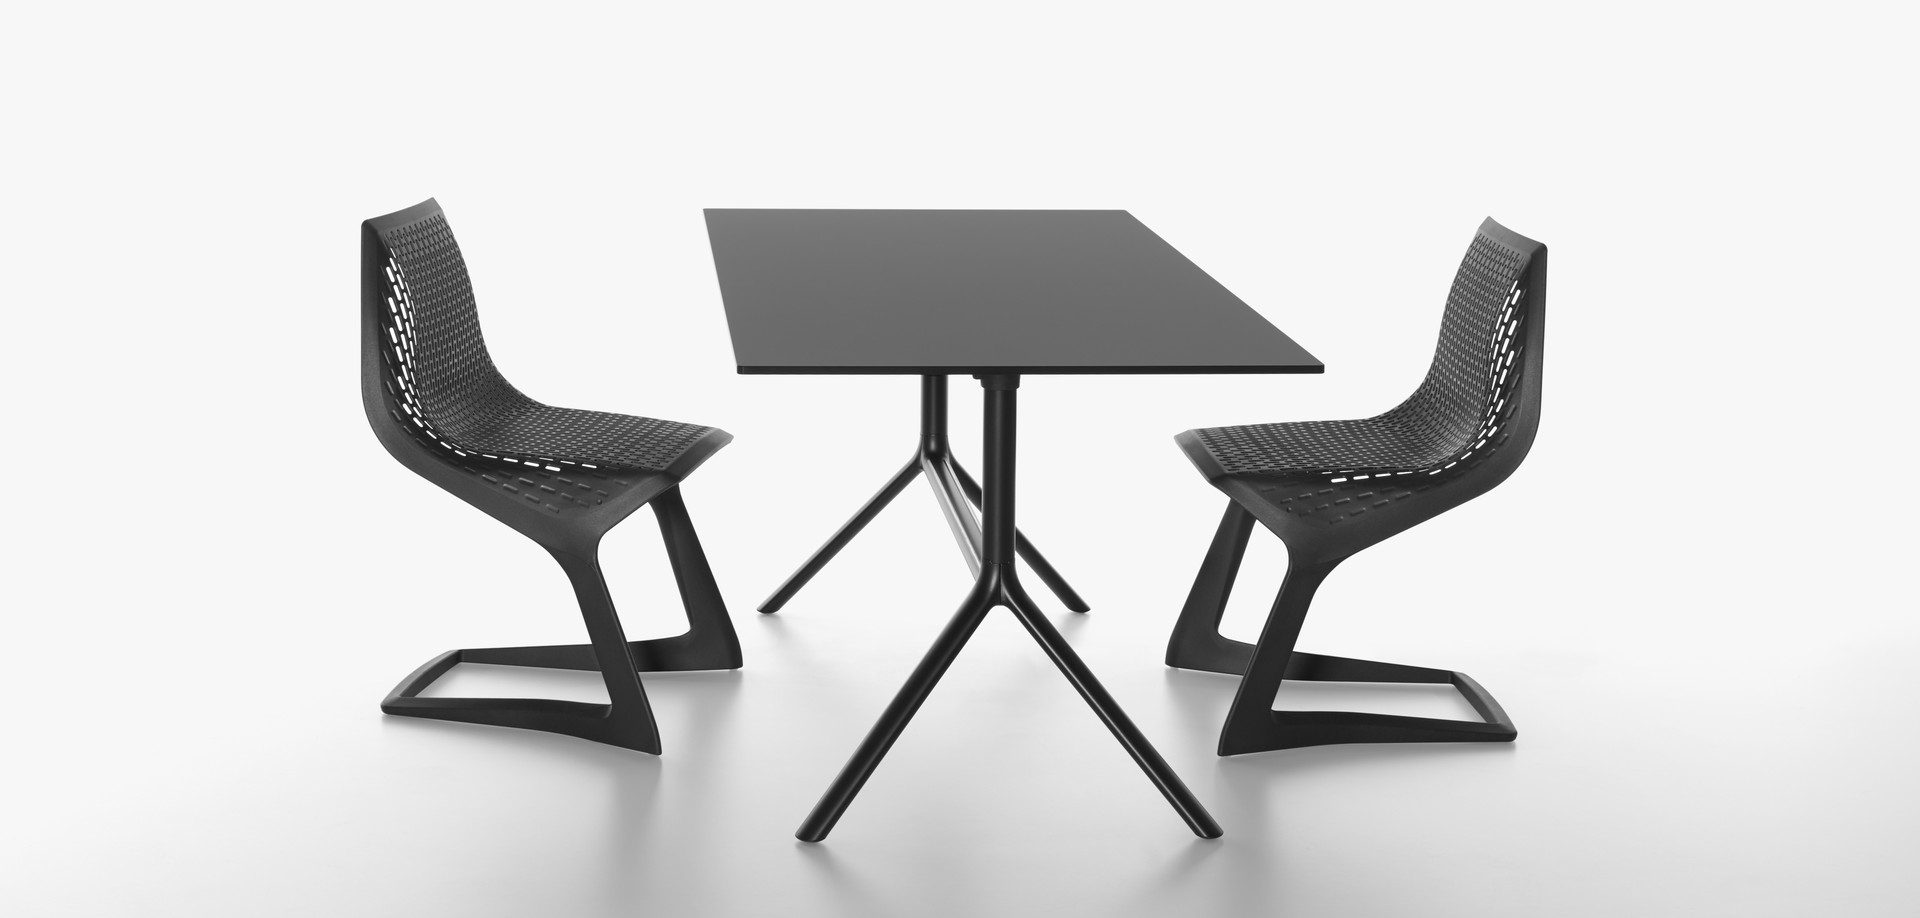 Plank - MYTO chair, black. MIURA table, black.